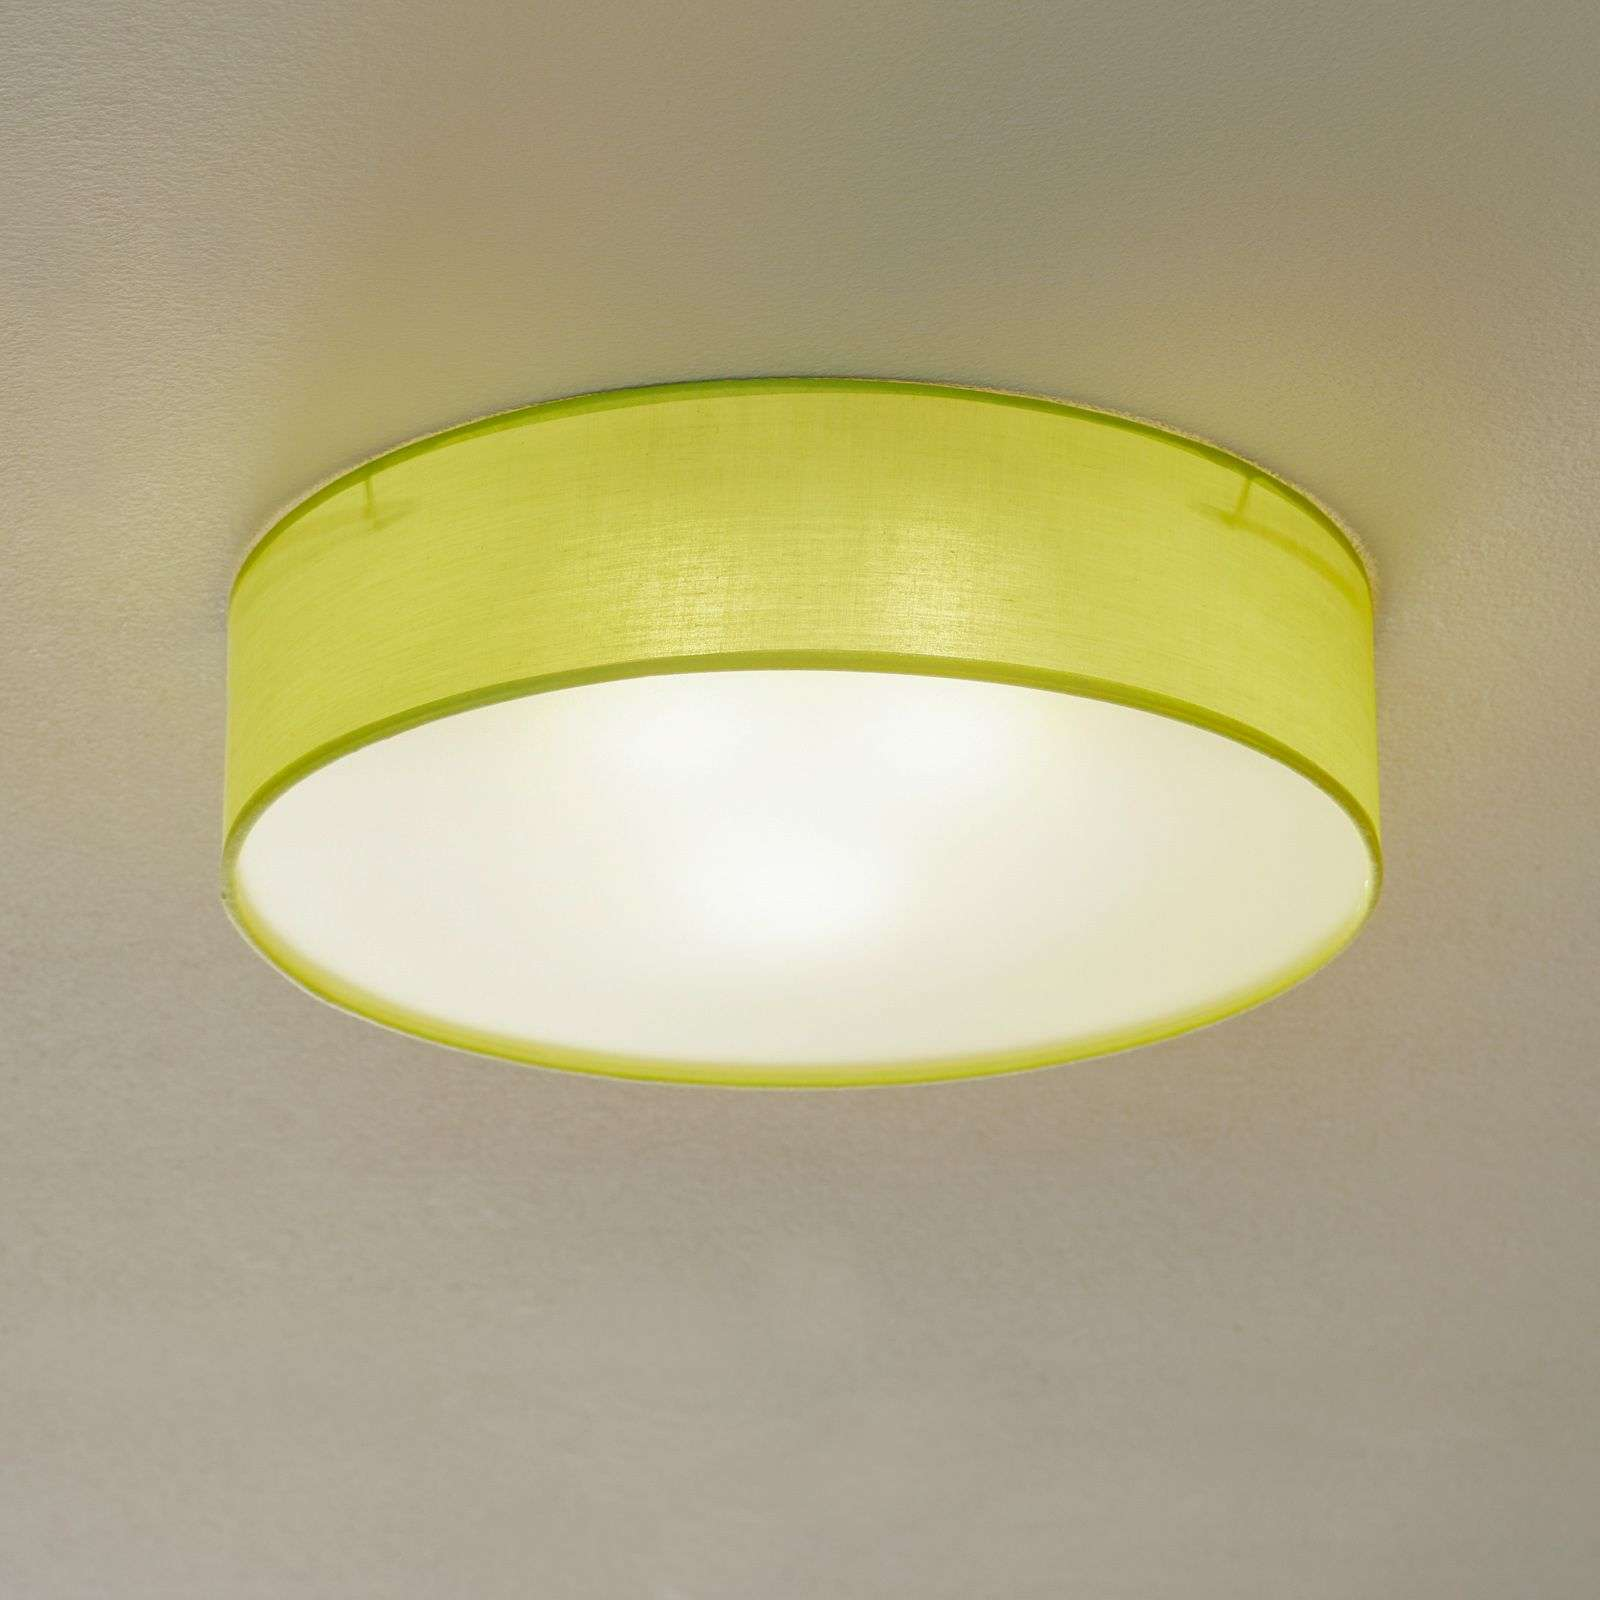 Green fabric ceiling light jitendra lights green fabric ceiling light jitendra aloadofball Image collections